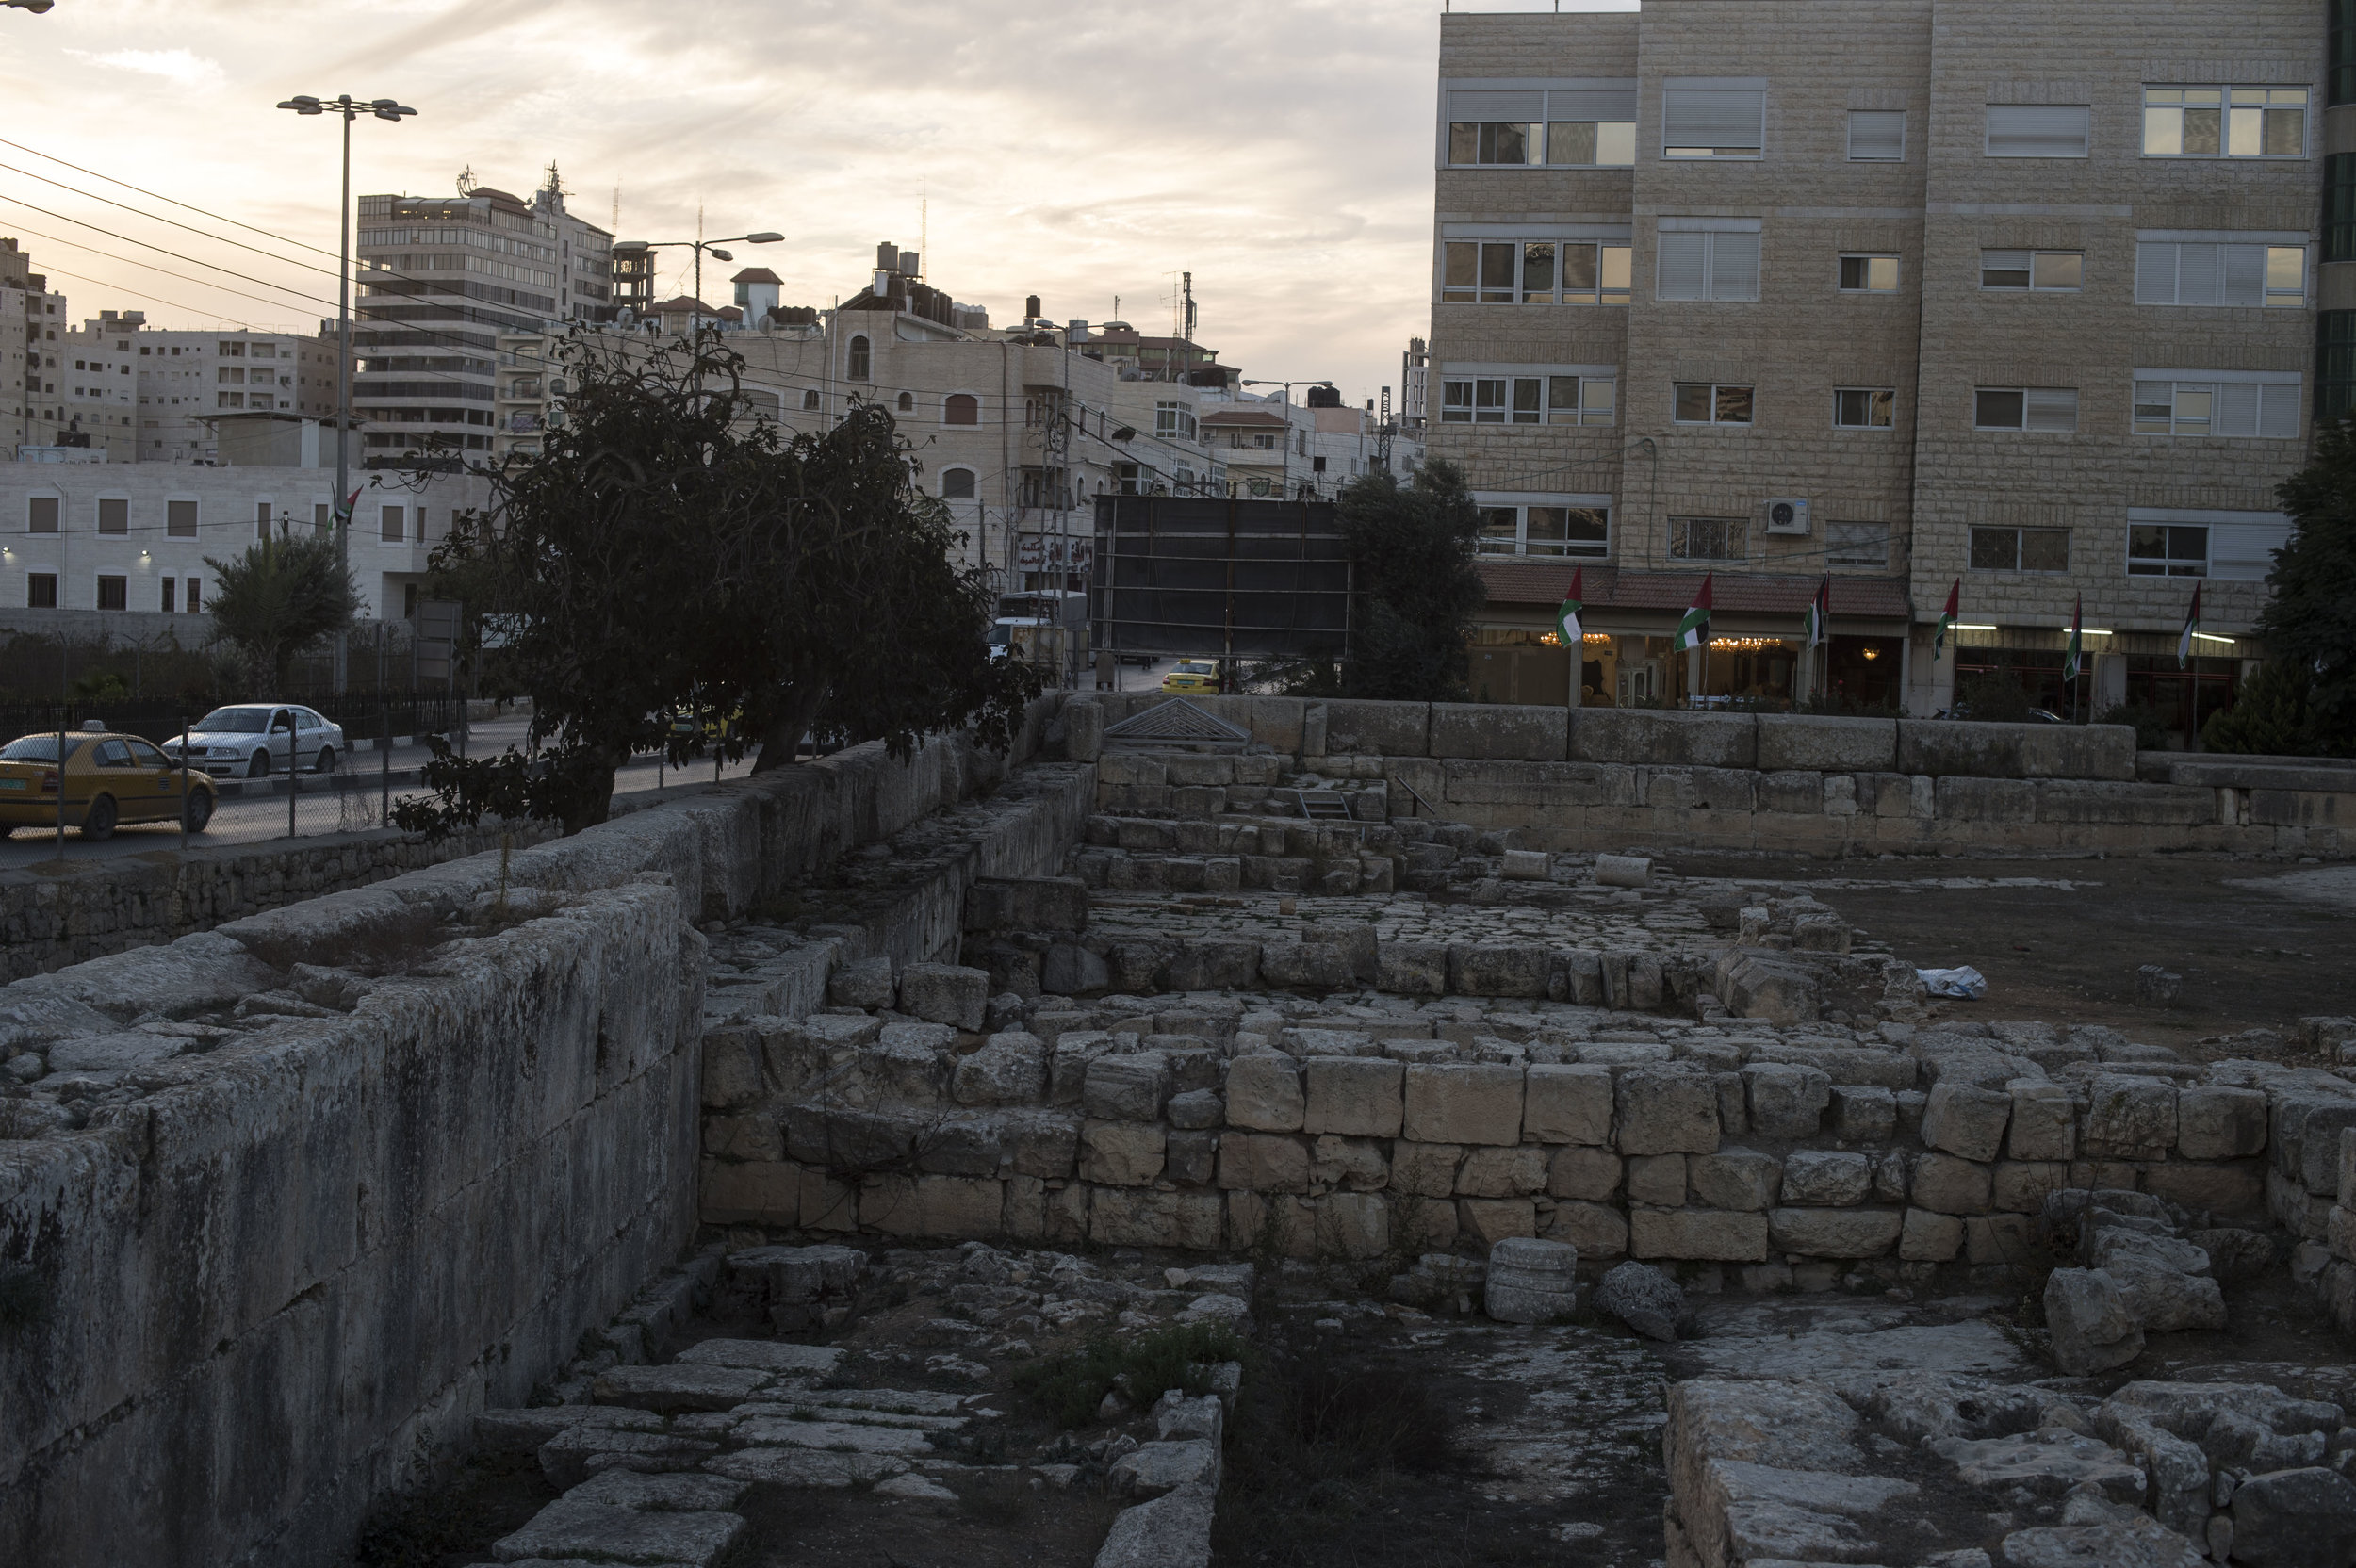 These are the beginnings of the mosque, before it was then relocated.